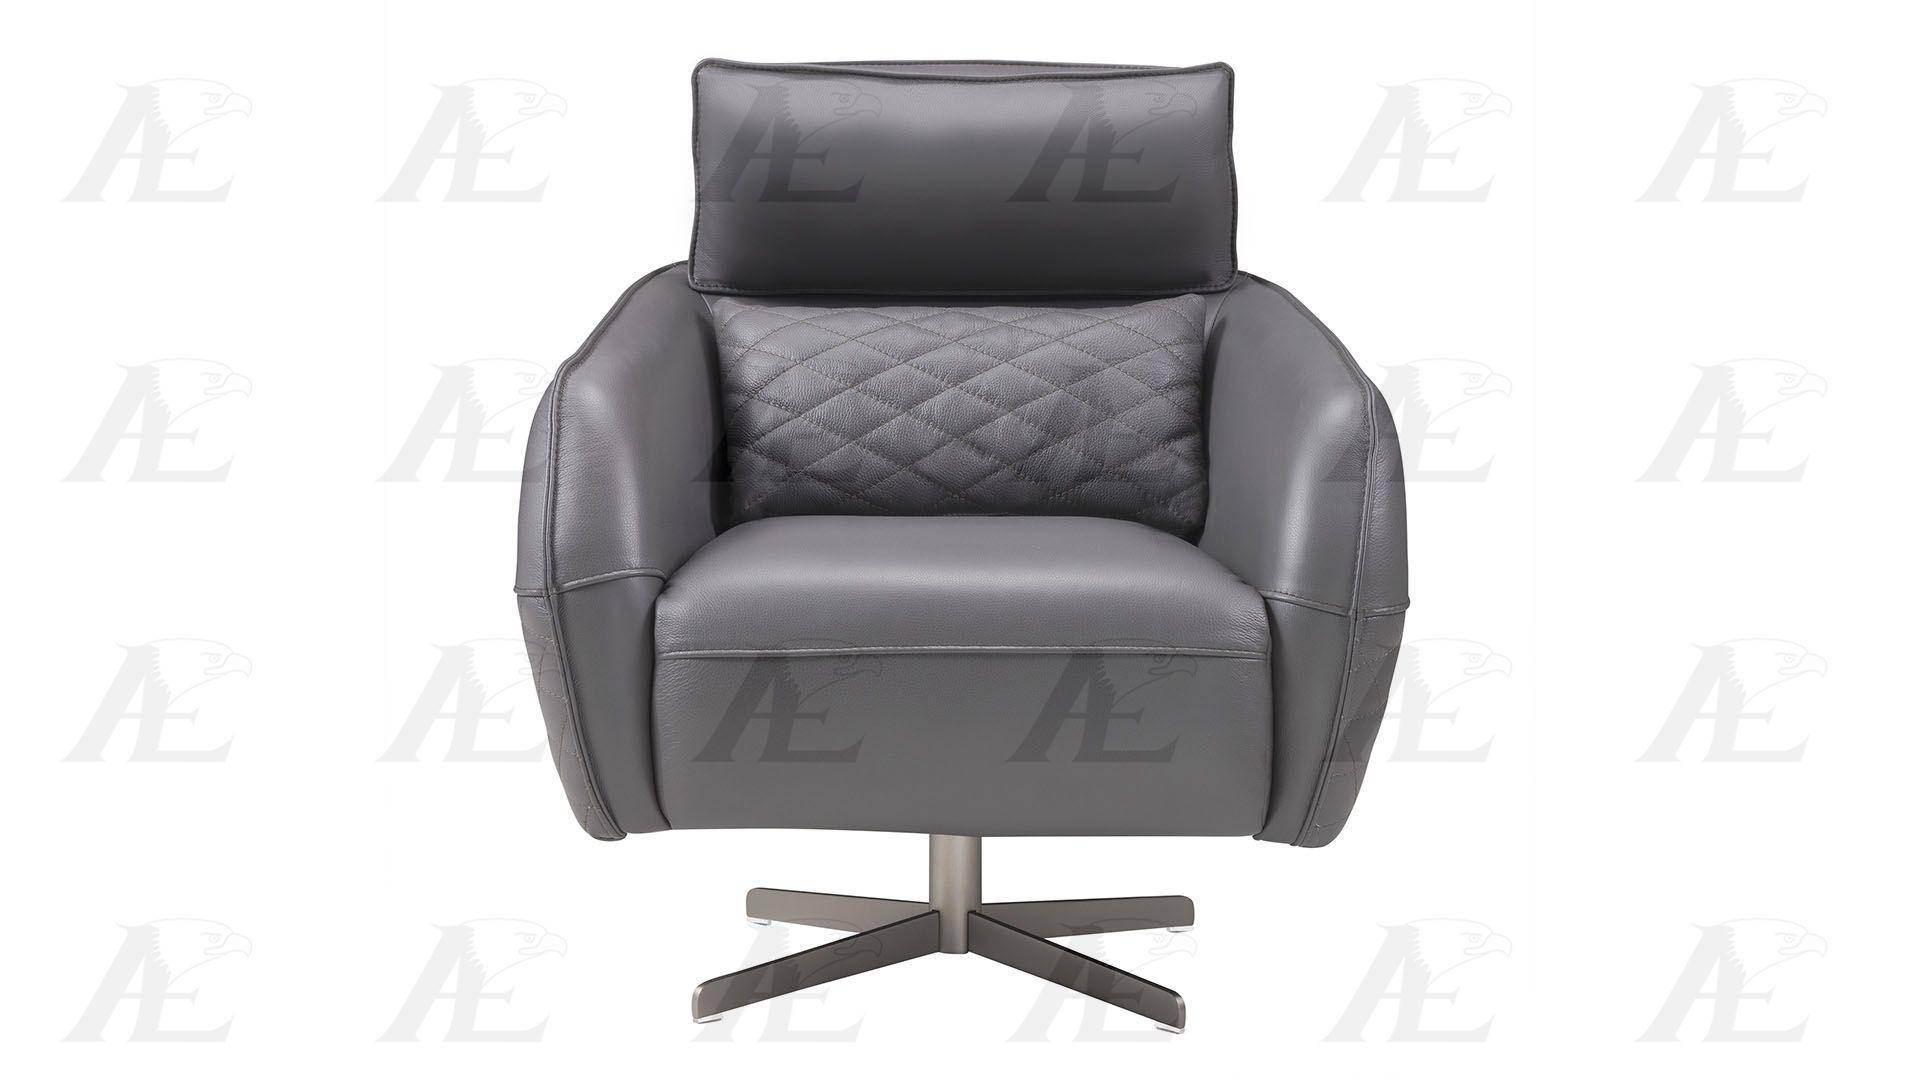 American Eagle Furniture Ek Ch06A Gr Dark Gray Swivel Accent Chair Within Dark Grey Swivel Chairs (View 18 of 20)